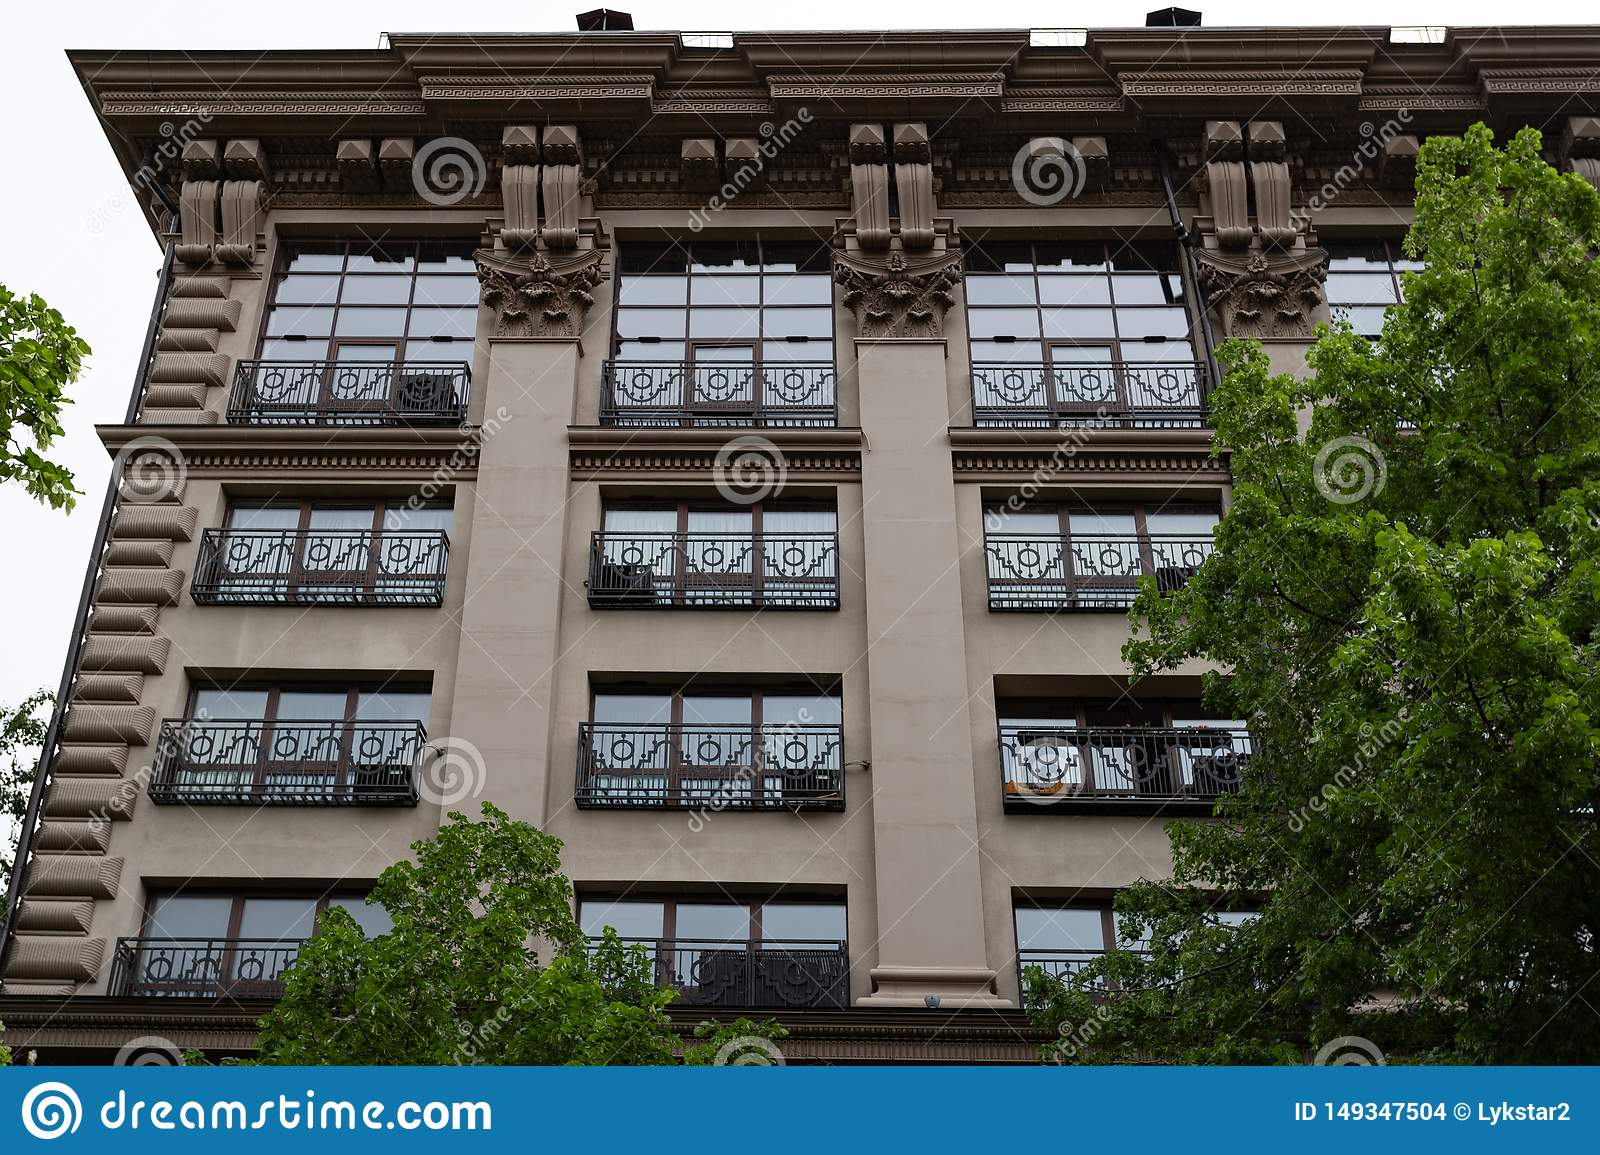 Several Windows in a row on the facade of the old building. Windows in a row on a marble wall. Rows of Windows on a tall building